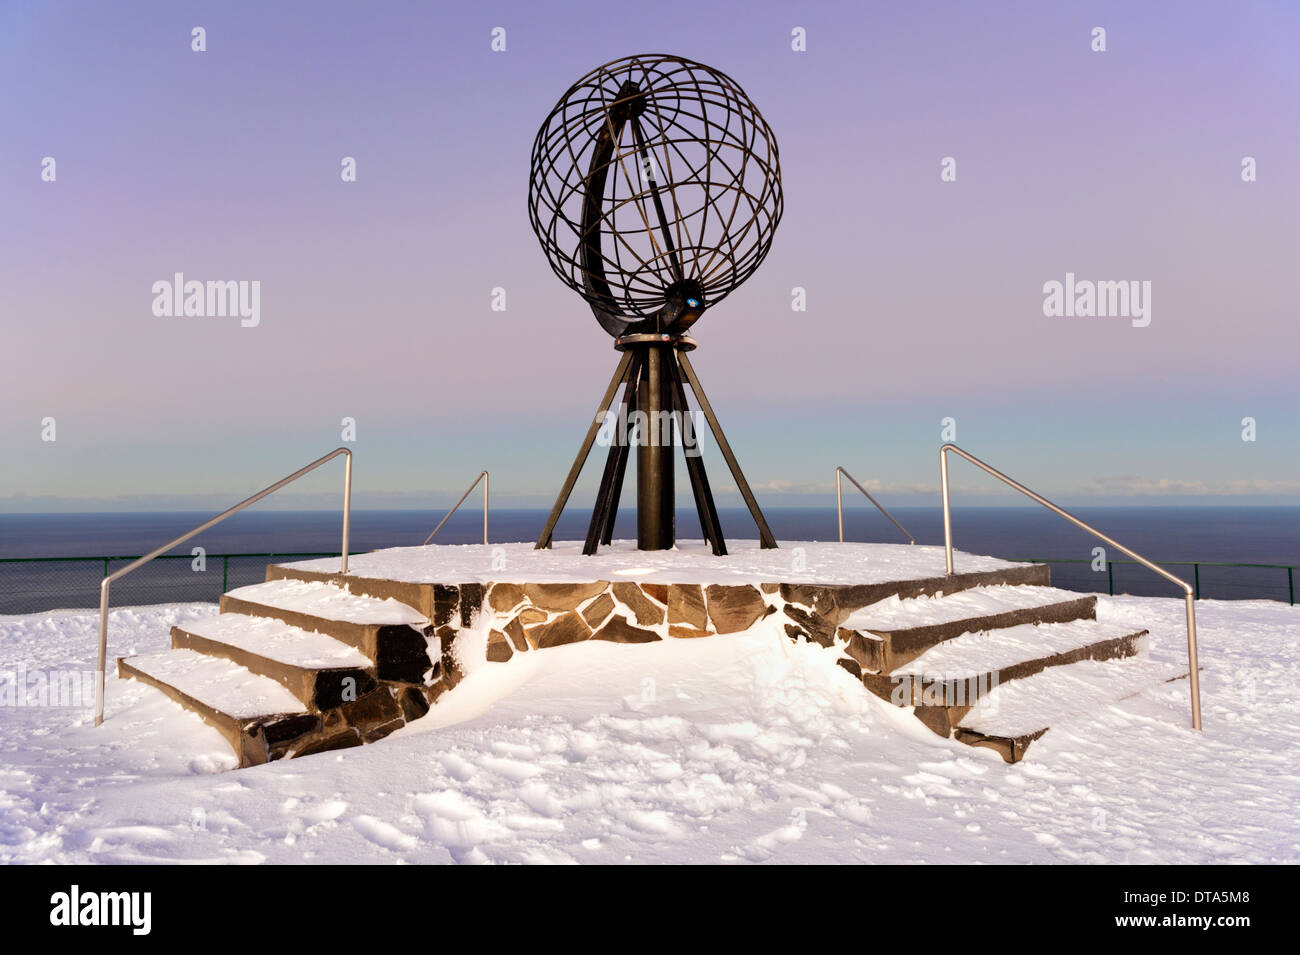 Winter at Nordkapp with globe sculpture, near Honningsvåg, Finnmark, Norway, the most northern point in Europe - Stock Image